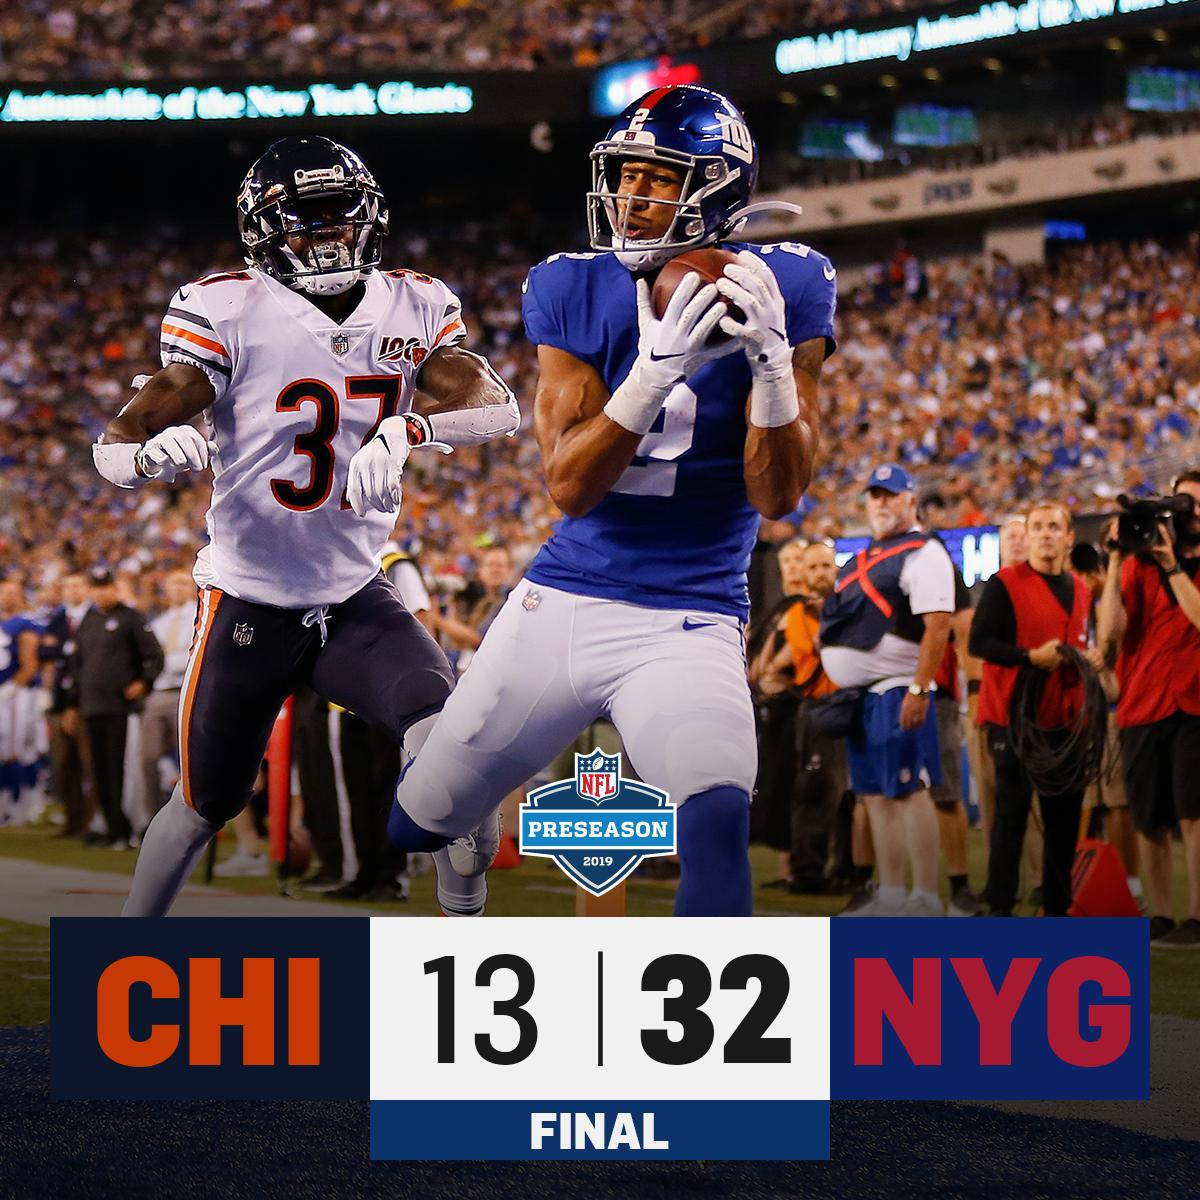 FINAL: @Giants defeat the Bears! #CHIvsNYG